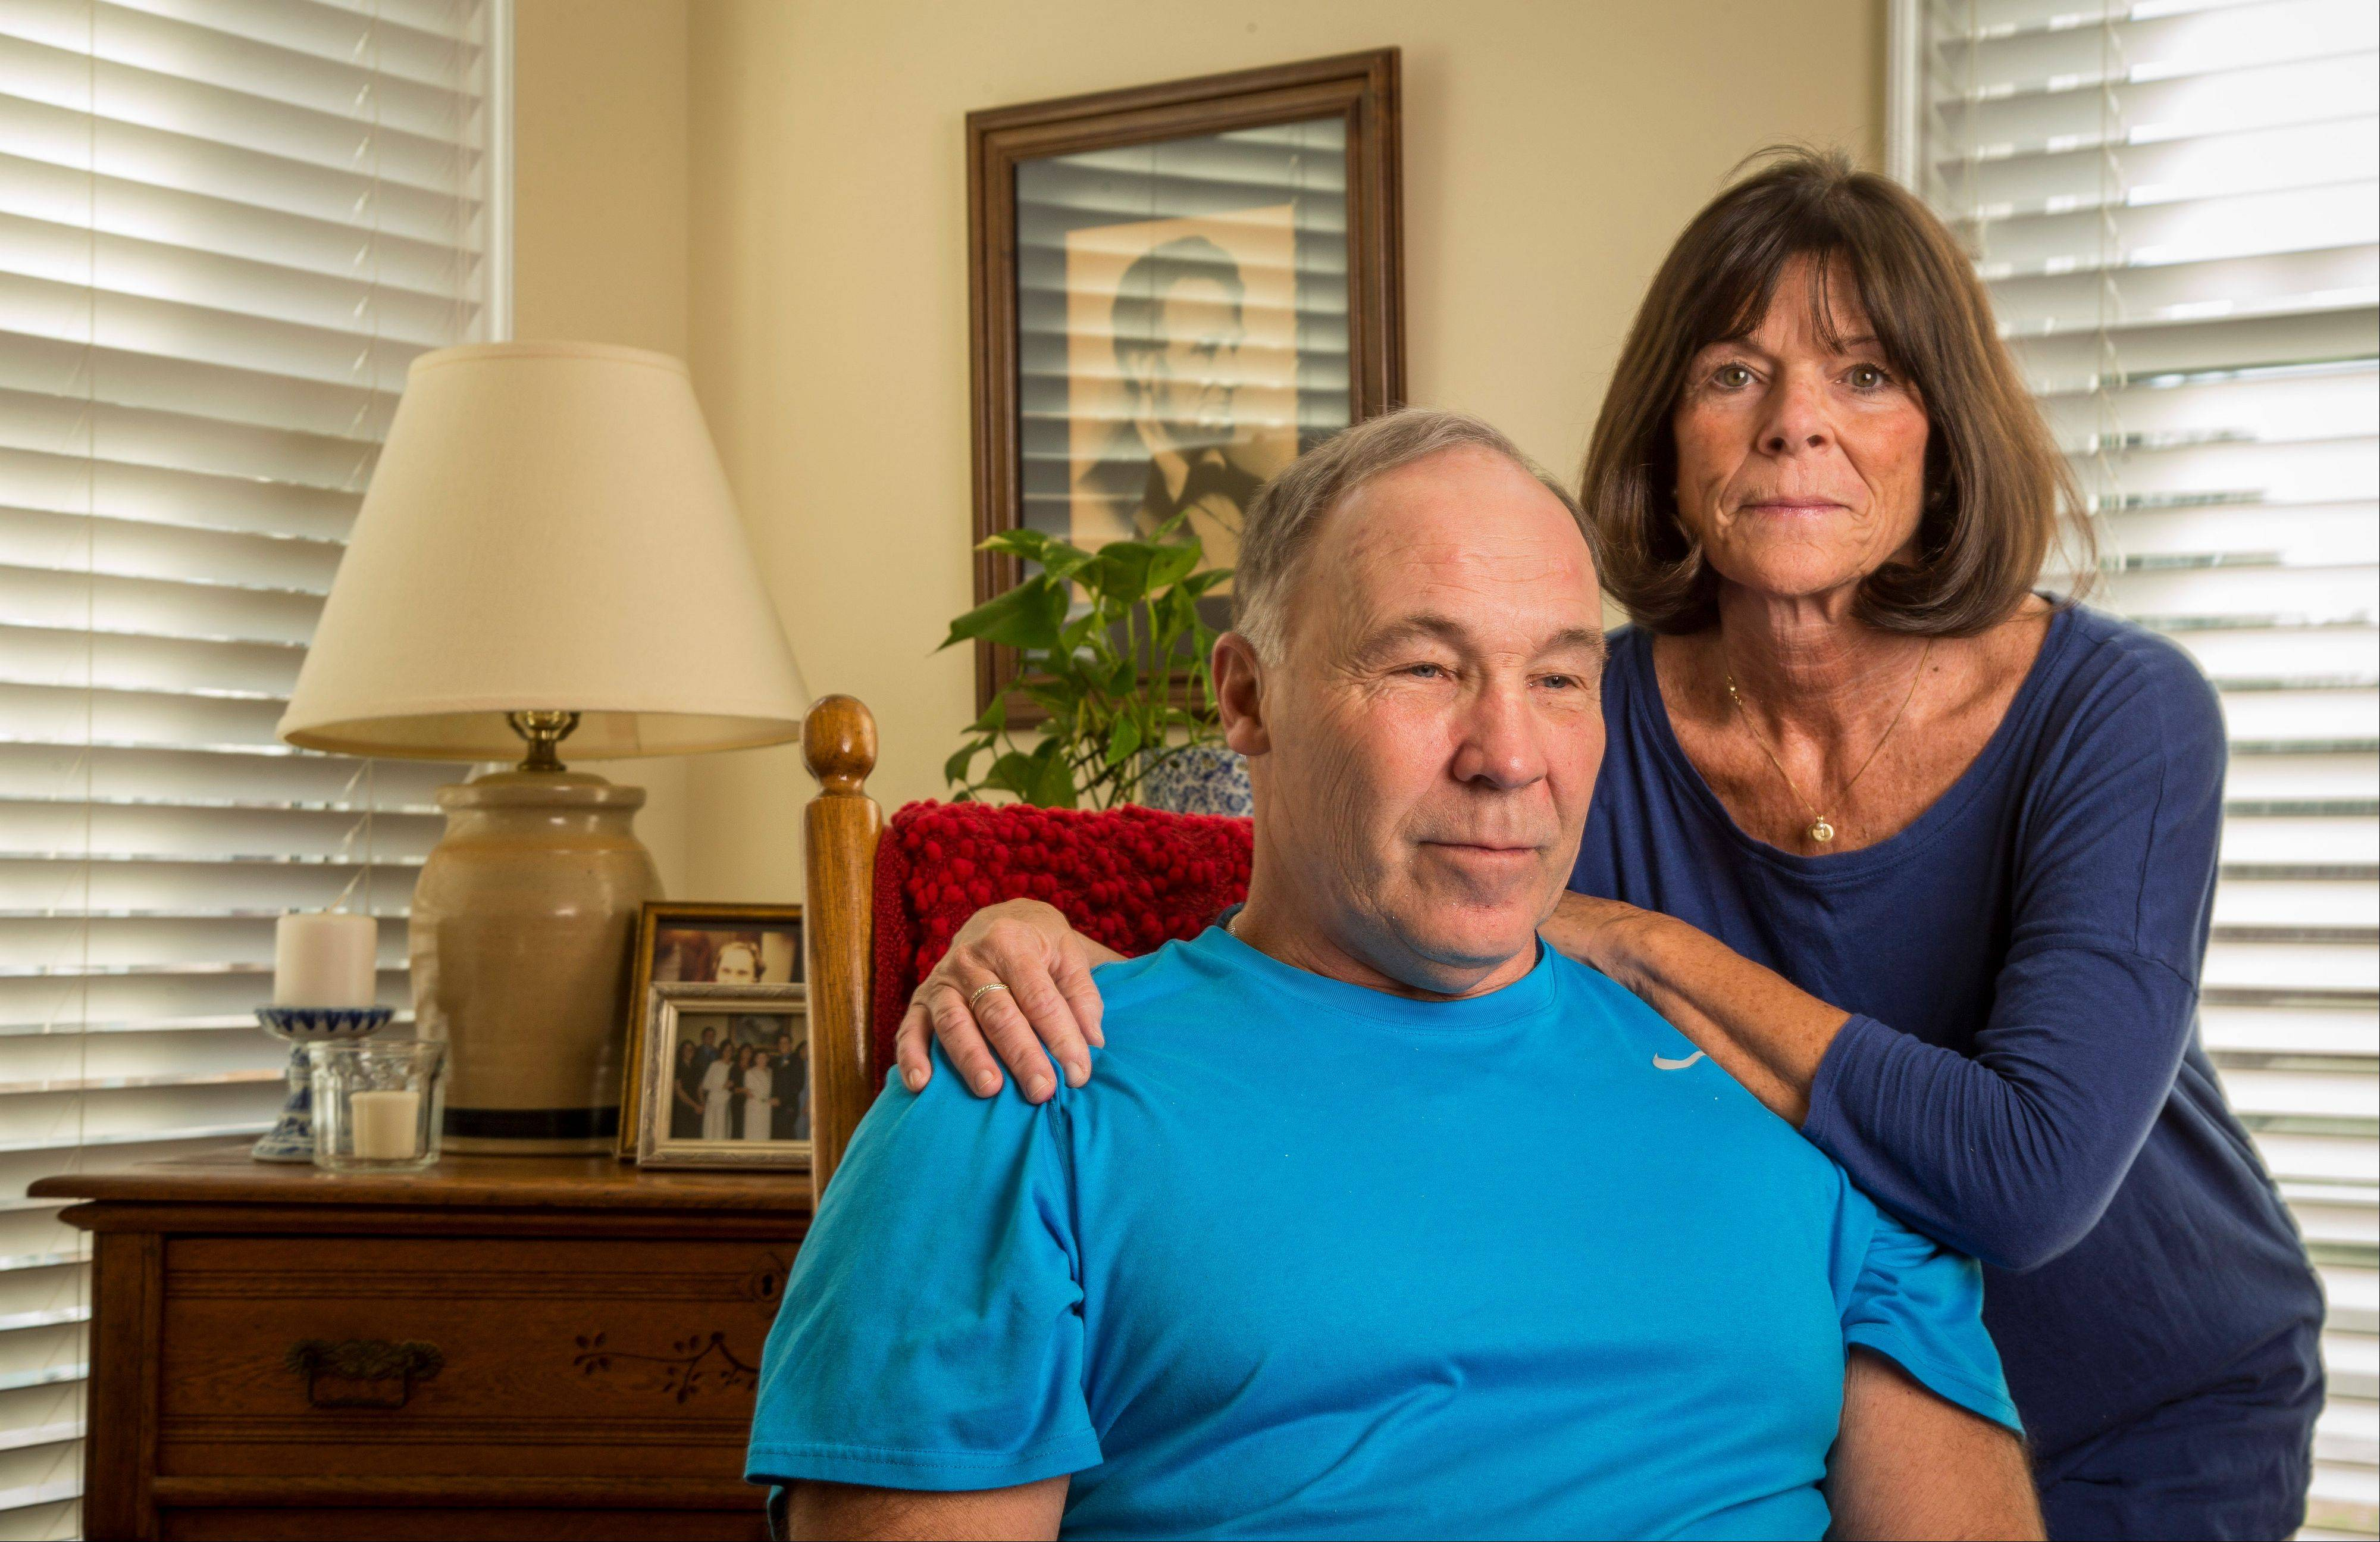 In this Jan. 23 photo, Pro Football Hall of Famer Joe DeLamielleure poses with his wife, Gerri, in their home in Charlotte, N.C. DeLamielleure is convinced that he, like many former professional football players, suffers from a concussion-related brain disease CTE brought on by the many head blows and concussions experienced during his 13 year NFL career.